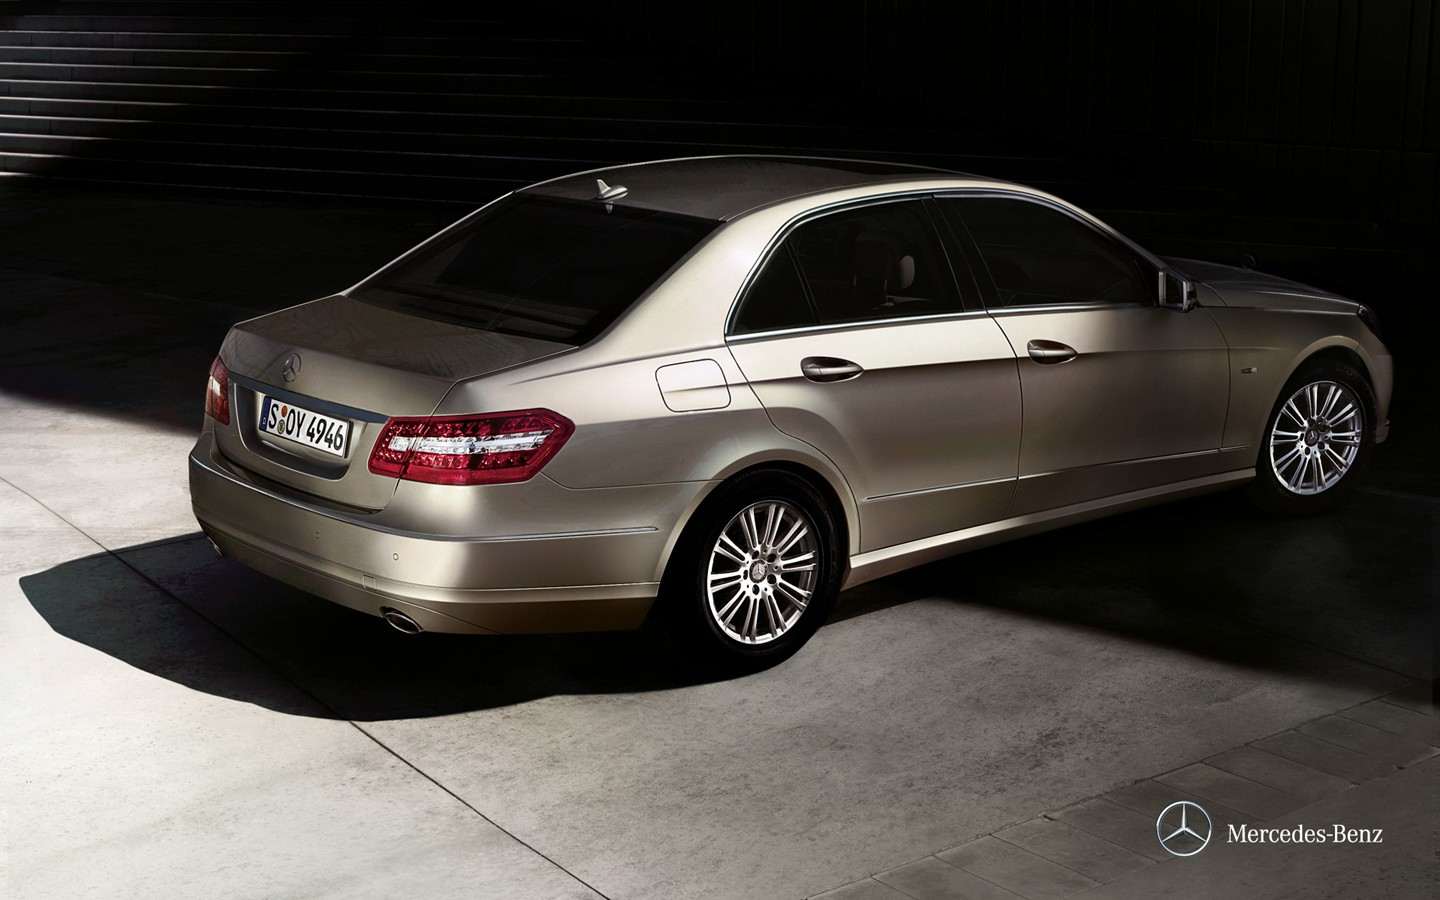 The new Mercedes-Benz E-Class Saloon wallpaper 31885